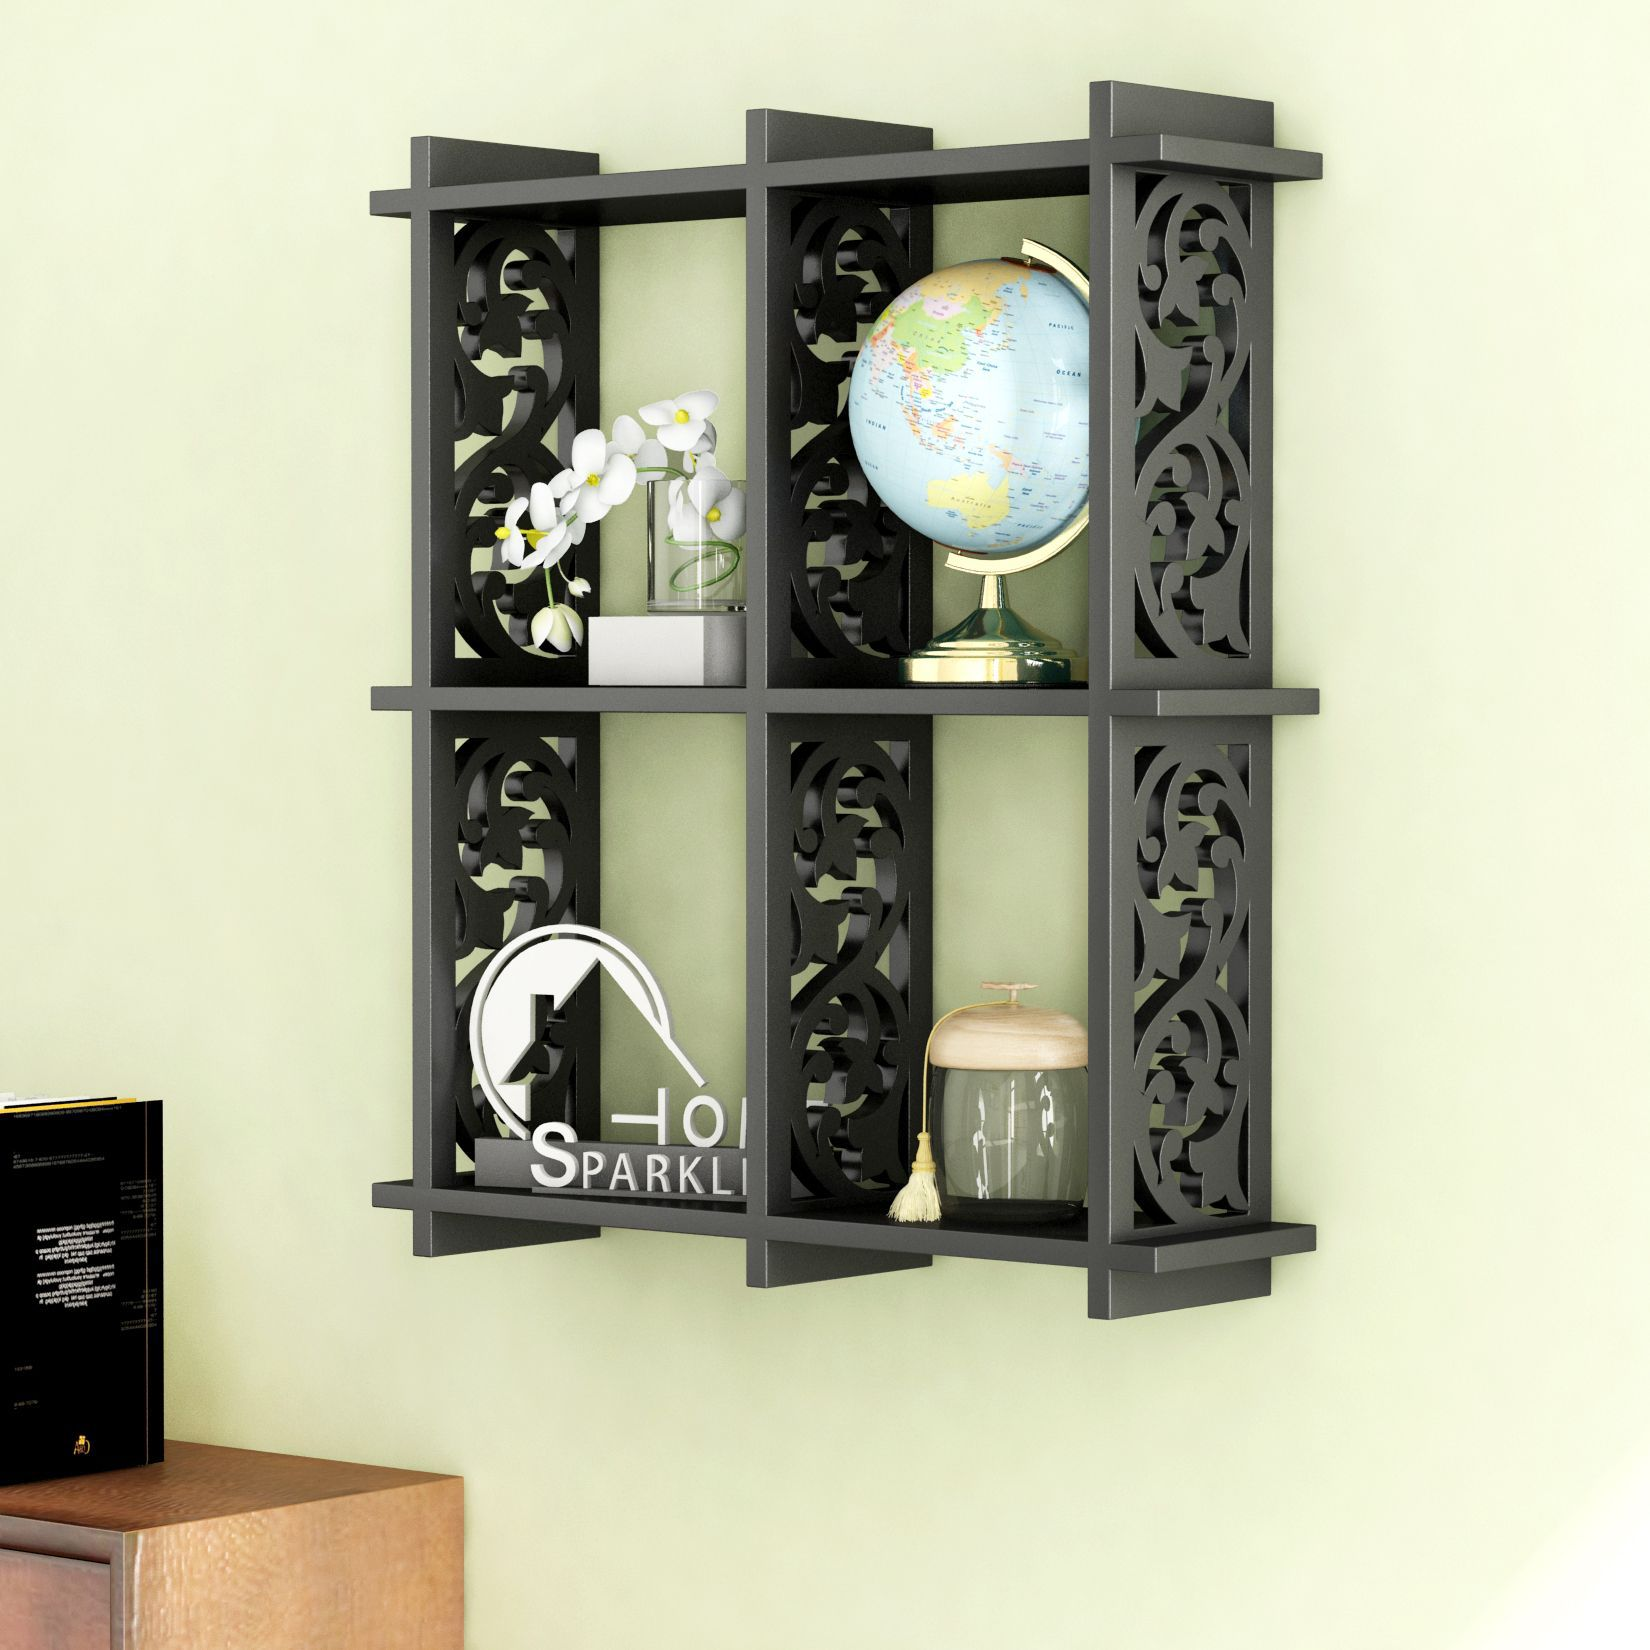 Home Sparkle MDF 4 Pocket Carved Wall Shelf For Wall Décor -Suitable For Living Room/Bed Room (Designed By Craftsman)